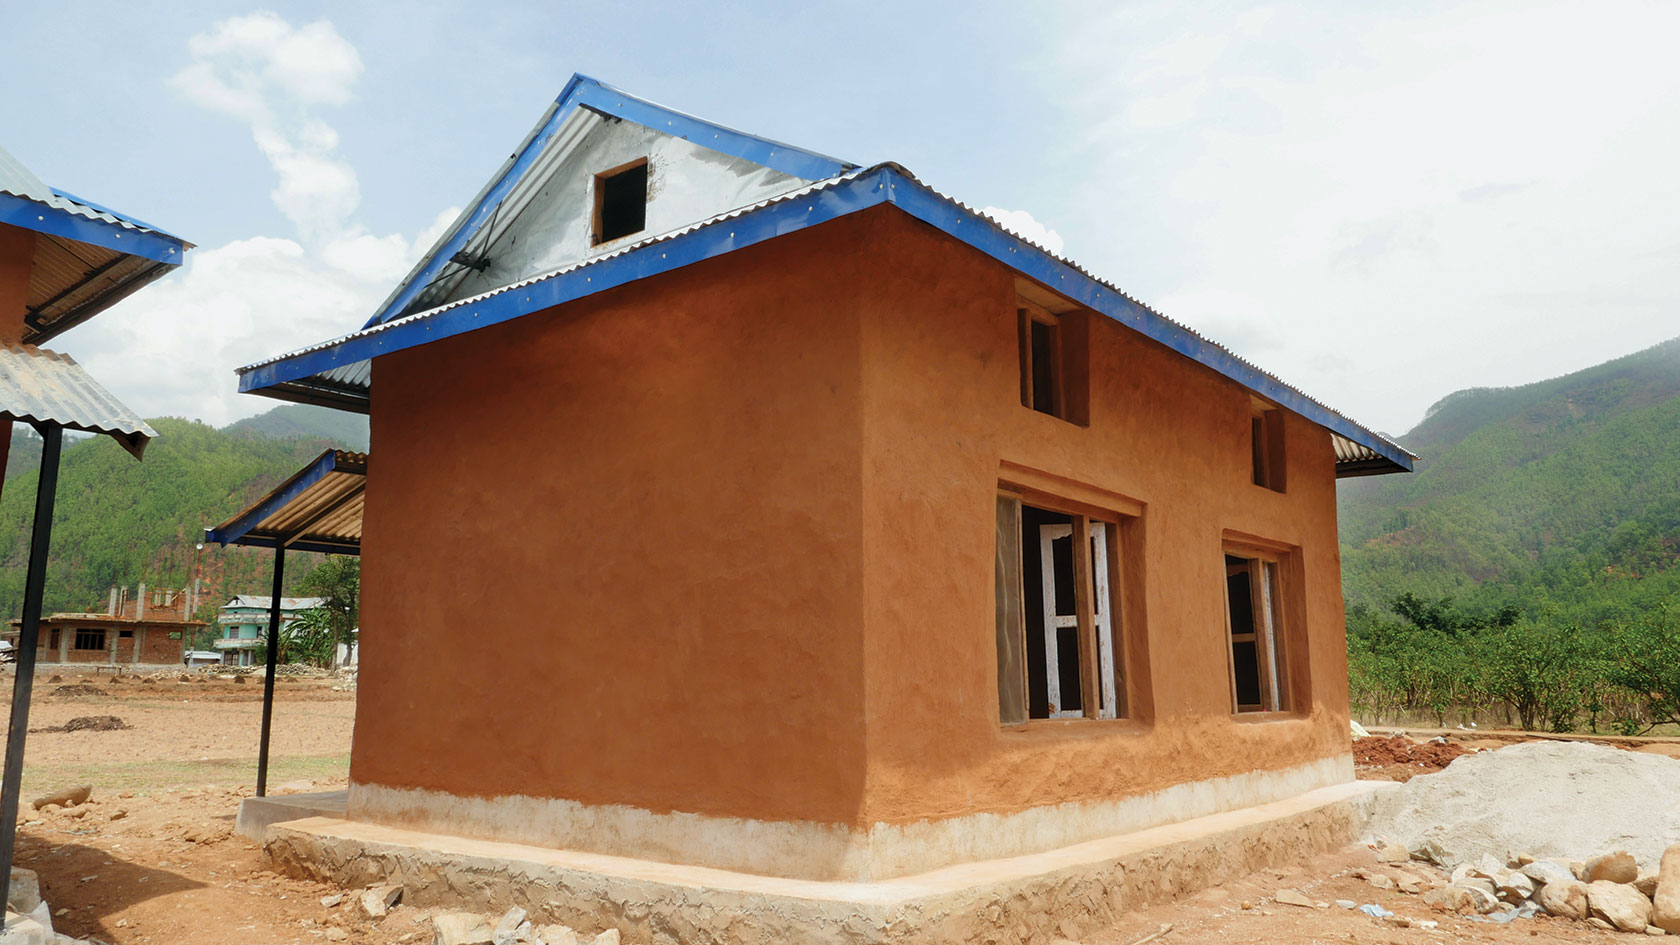 A completed Earthbag home with traditional adobe plaster.